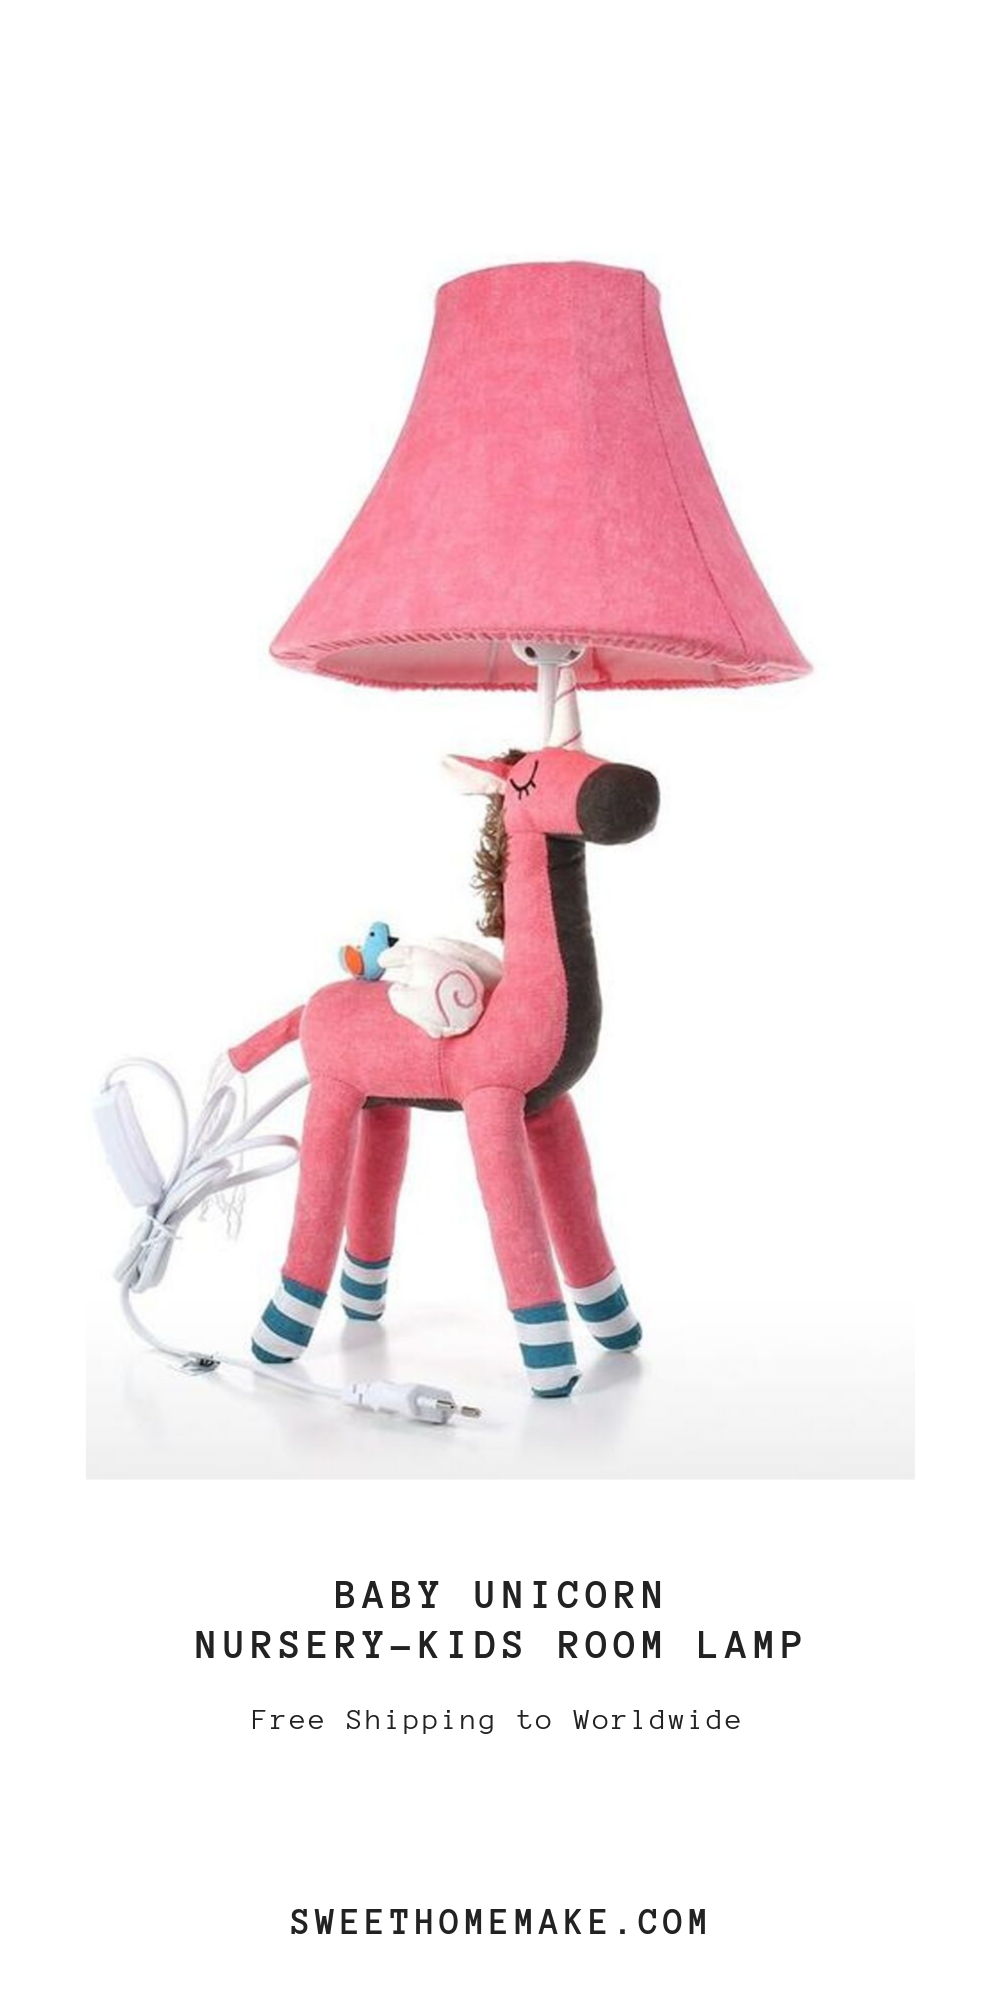 Nursery Lamp with Unicorn